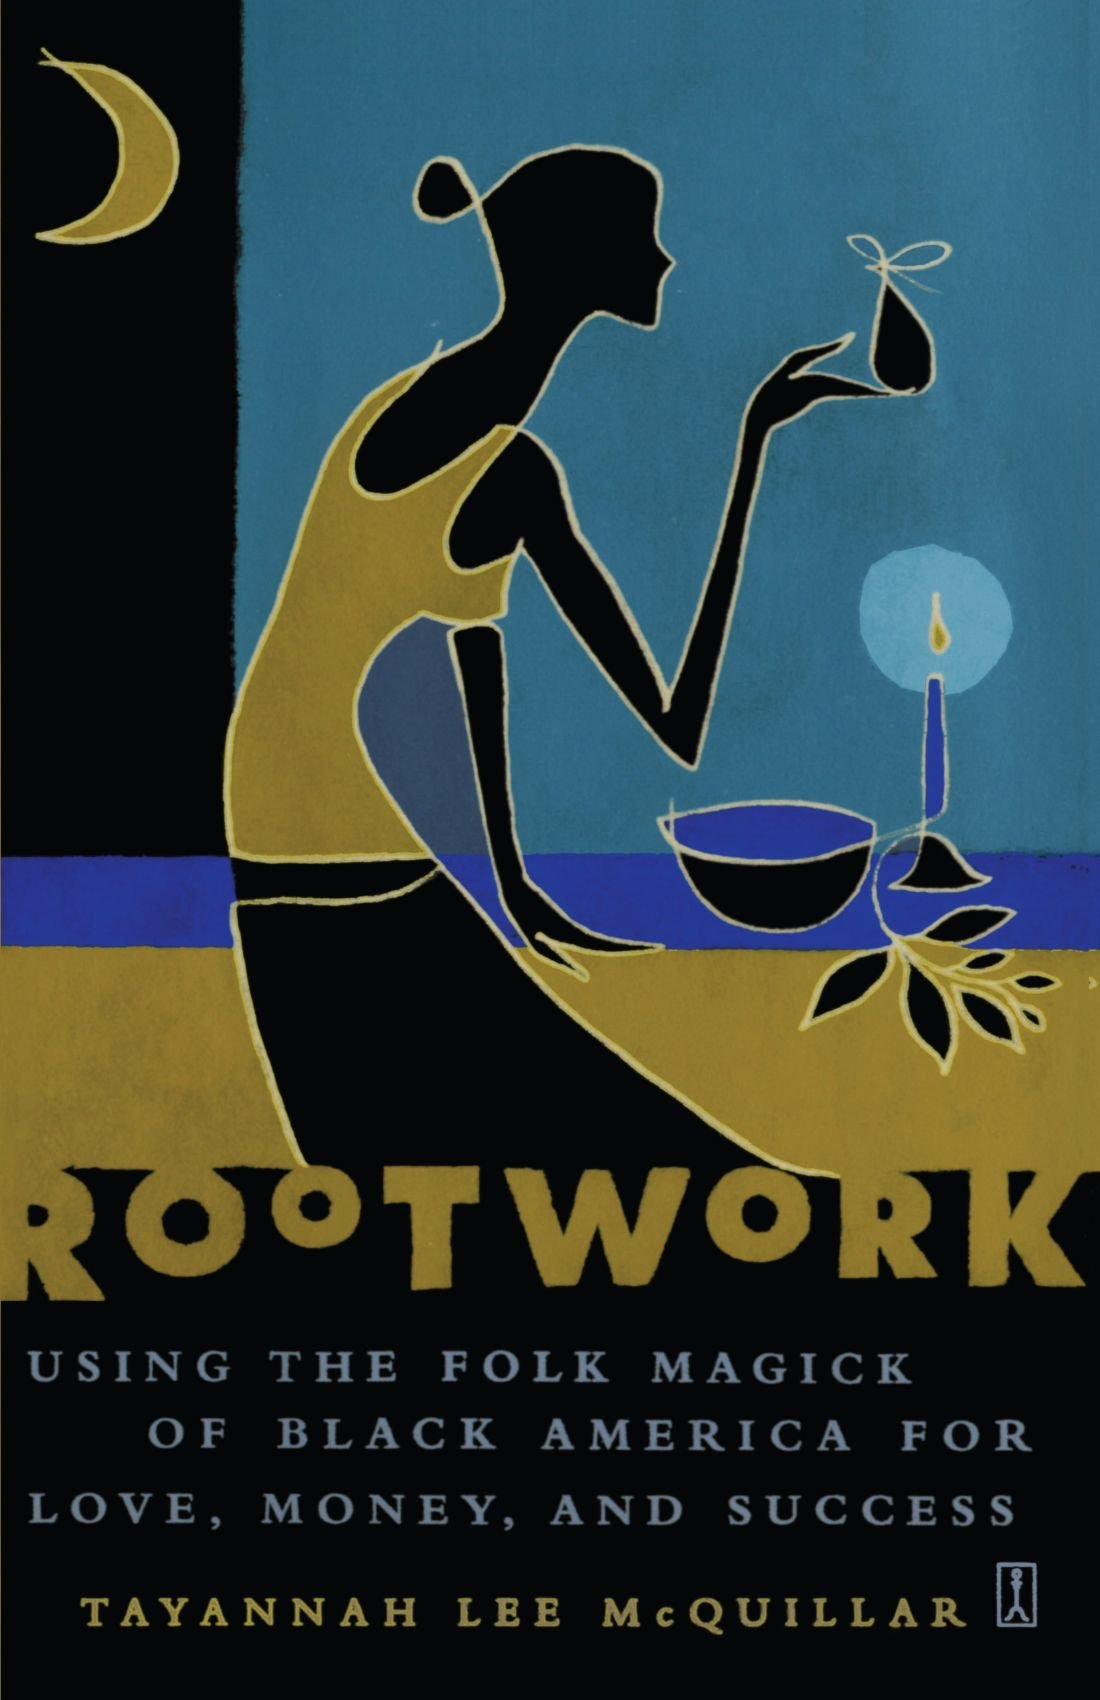 Amazon rootwork using the folk magick of black america for amazon rootwork using the folk magick of black america for love money and success 9780743235341 tayannah lee mcquillar books fandeluxe Images